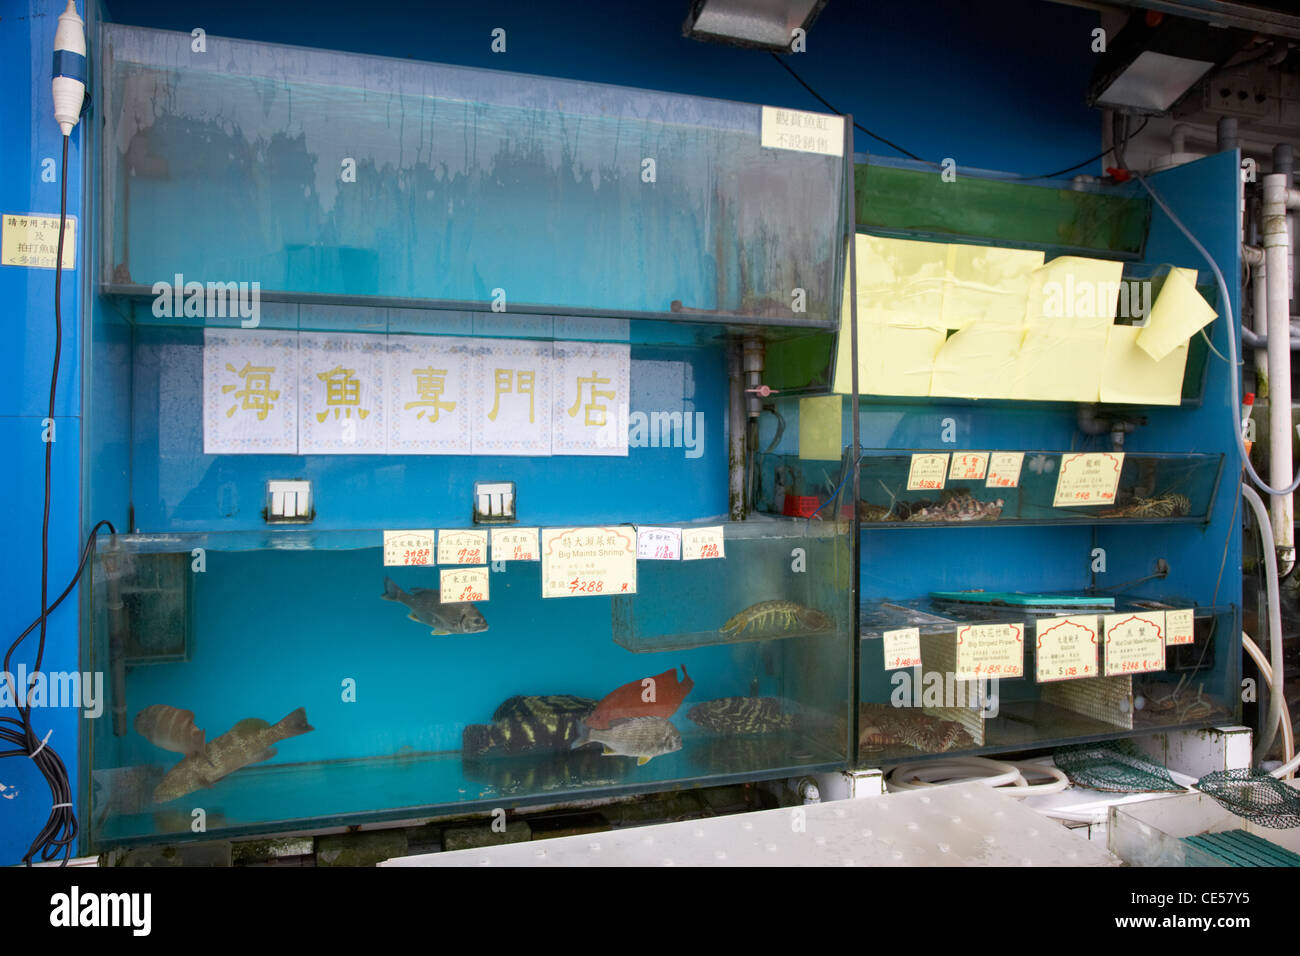 fresh fish for sale in tanks in a seafood restaurant kennedy town hong kong hksar china asia - Stock Image